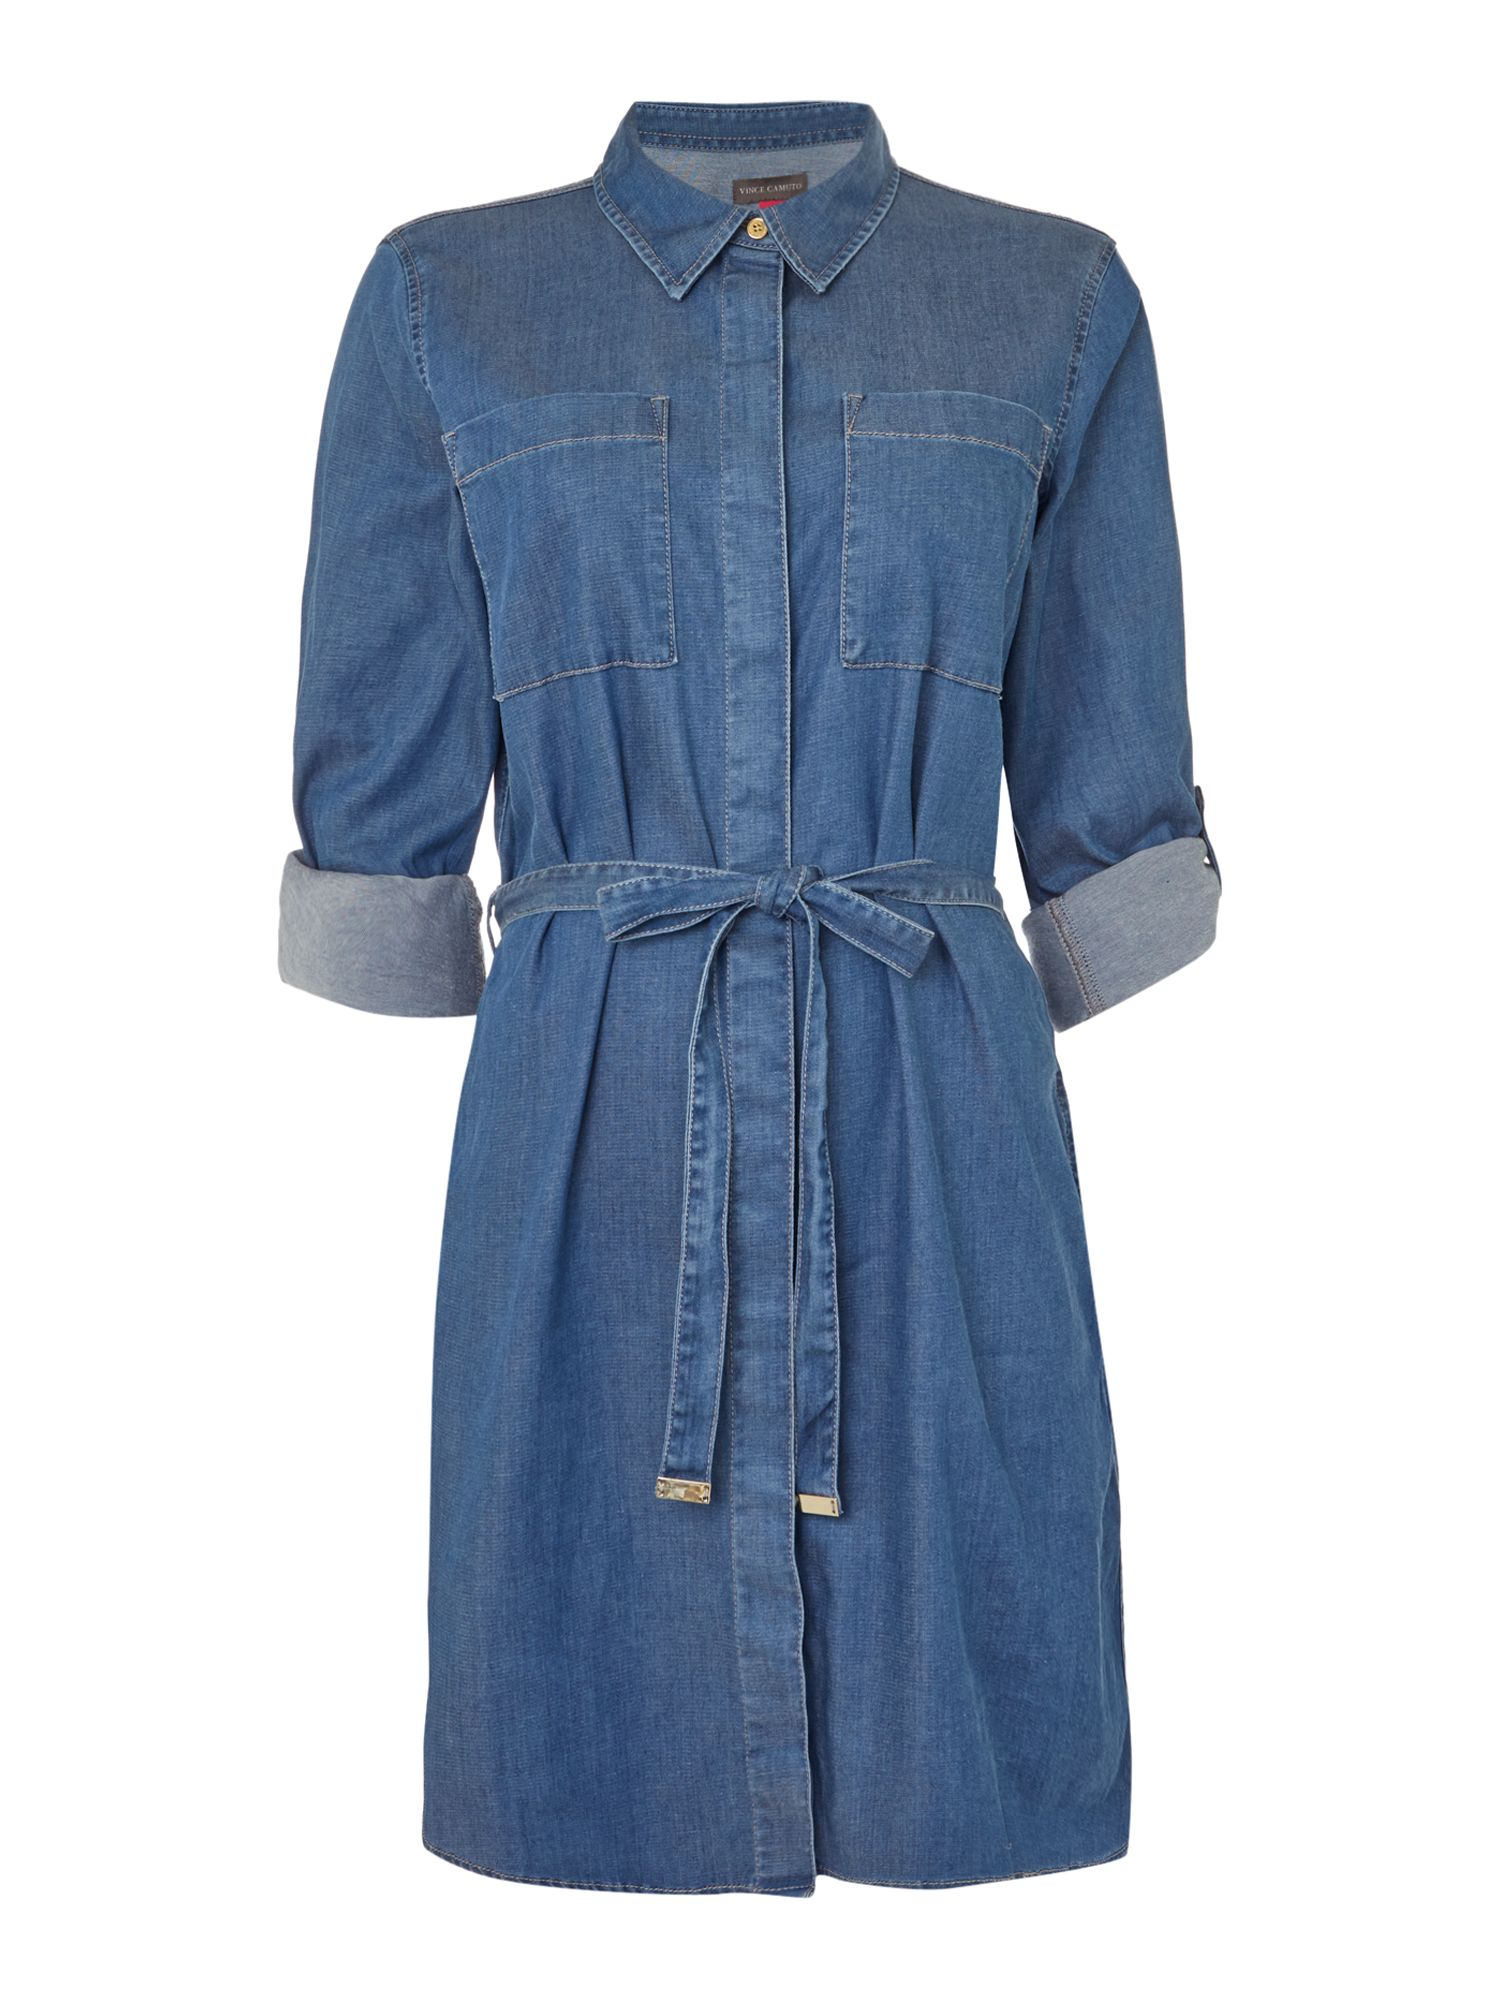 Vince Camuto Vince Camuto Belted denim dress, Denim